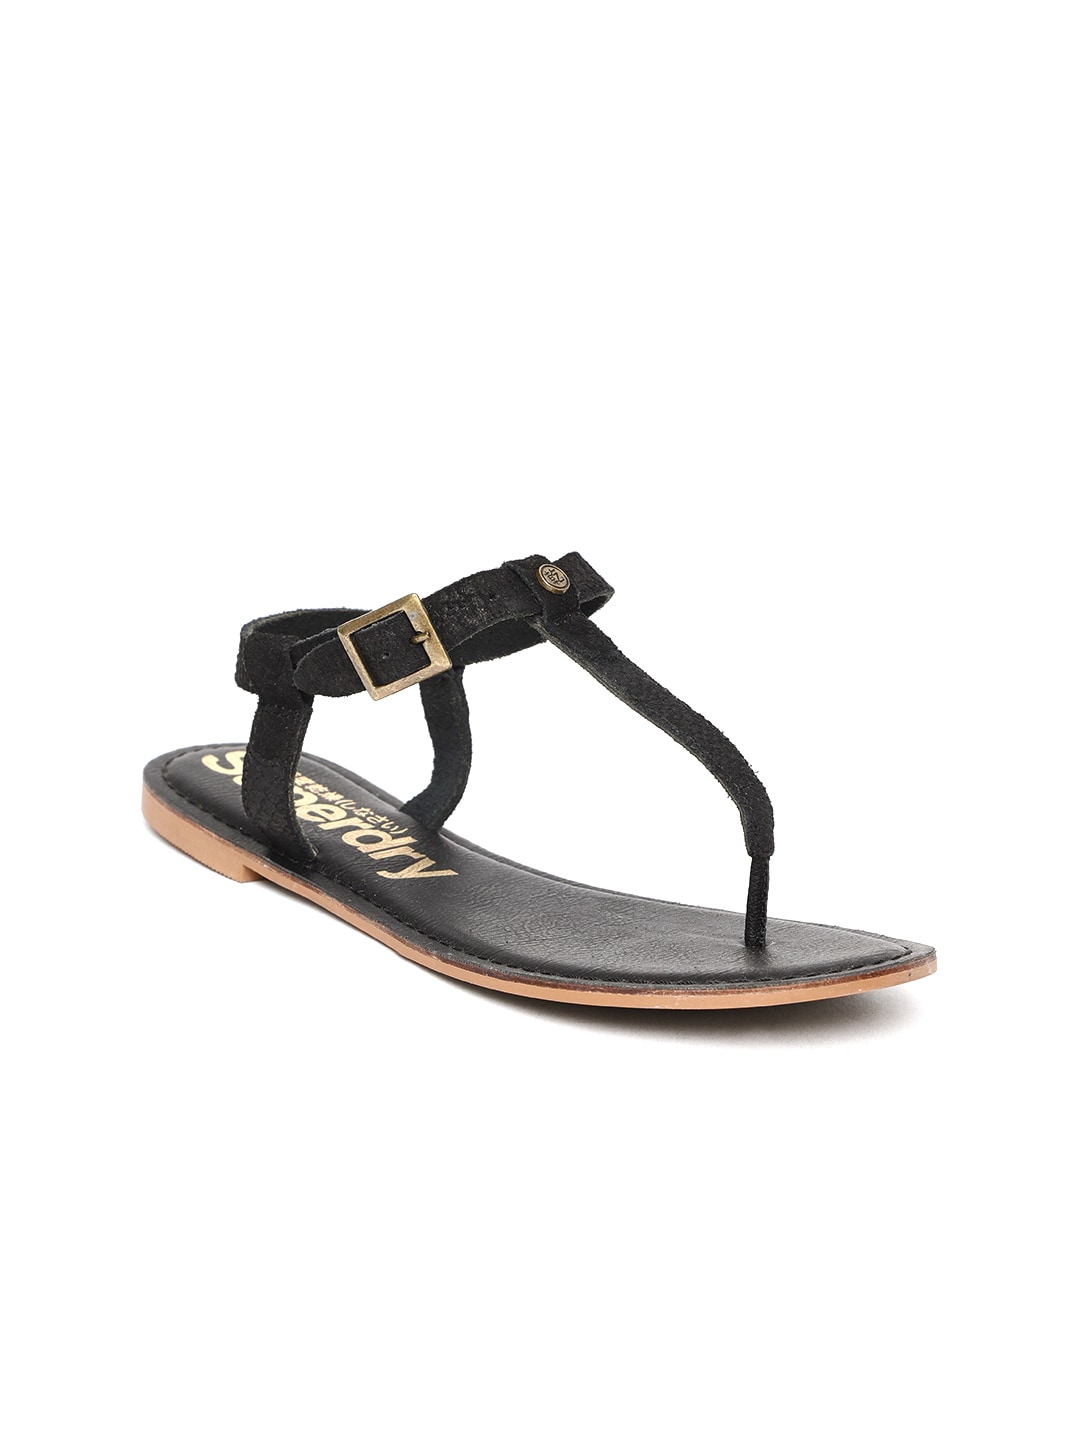 Superdry Women Black Leather T-Strap Flats image